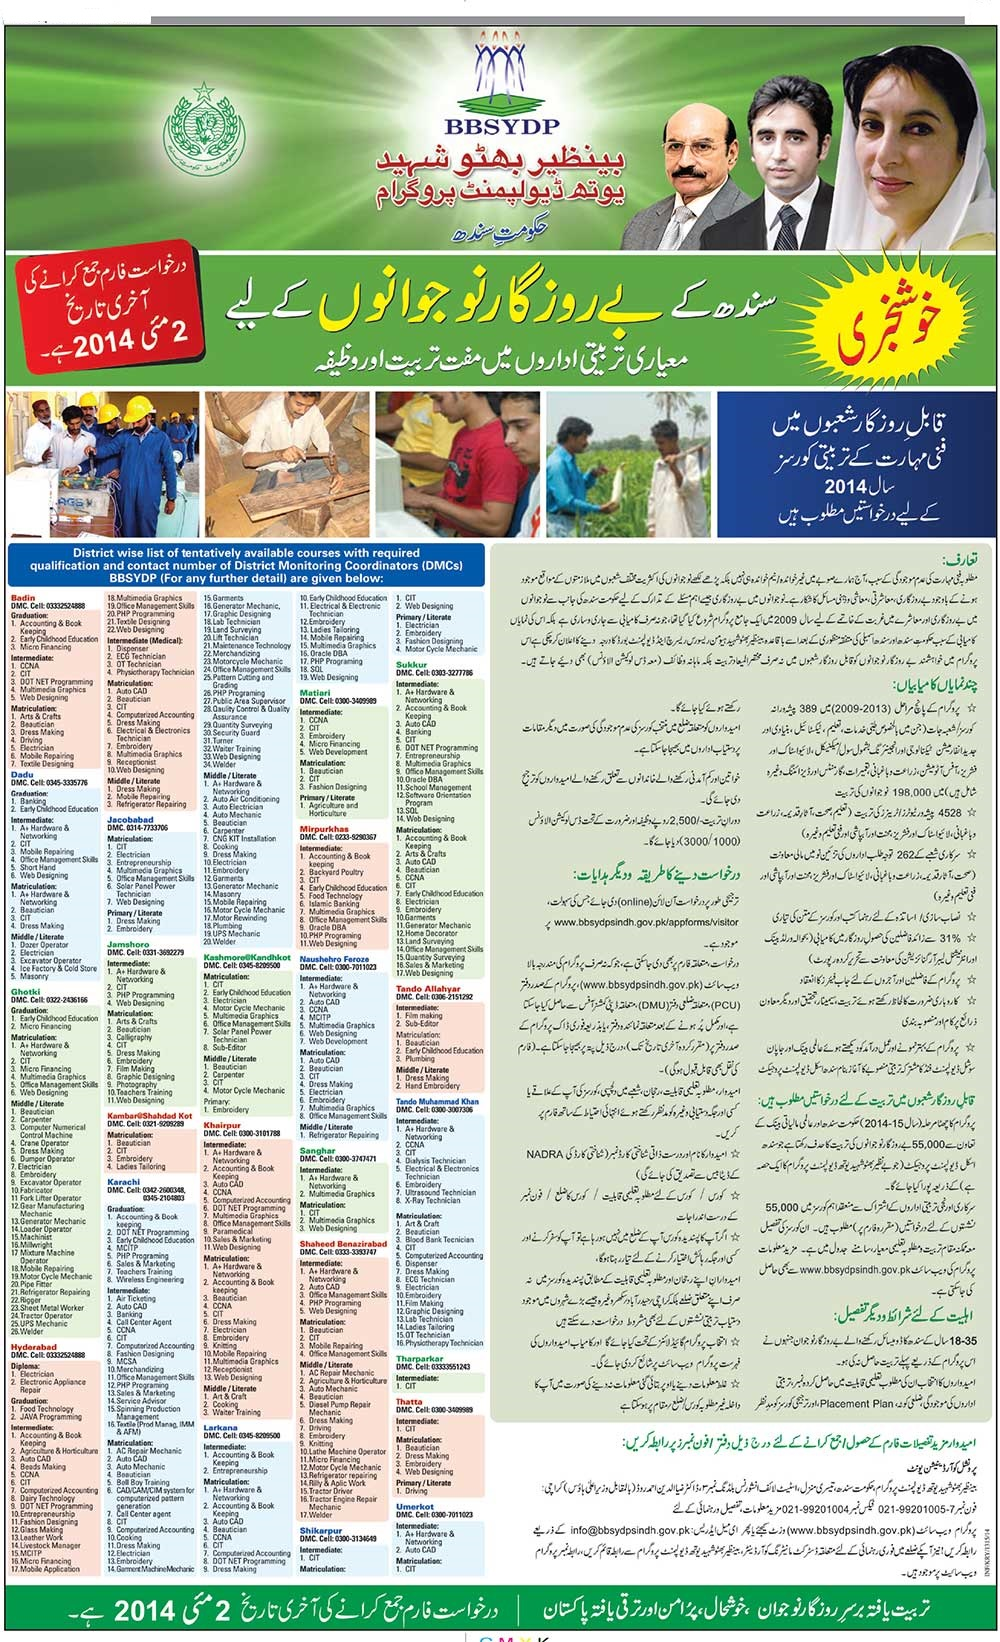 Benazir Bhutto Shaheed Youth Development Program 2015 Online Form